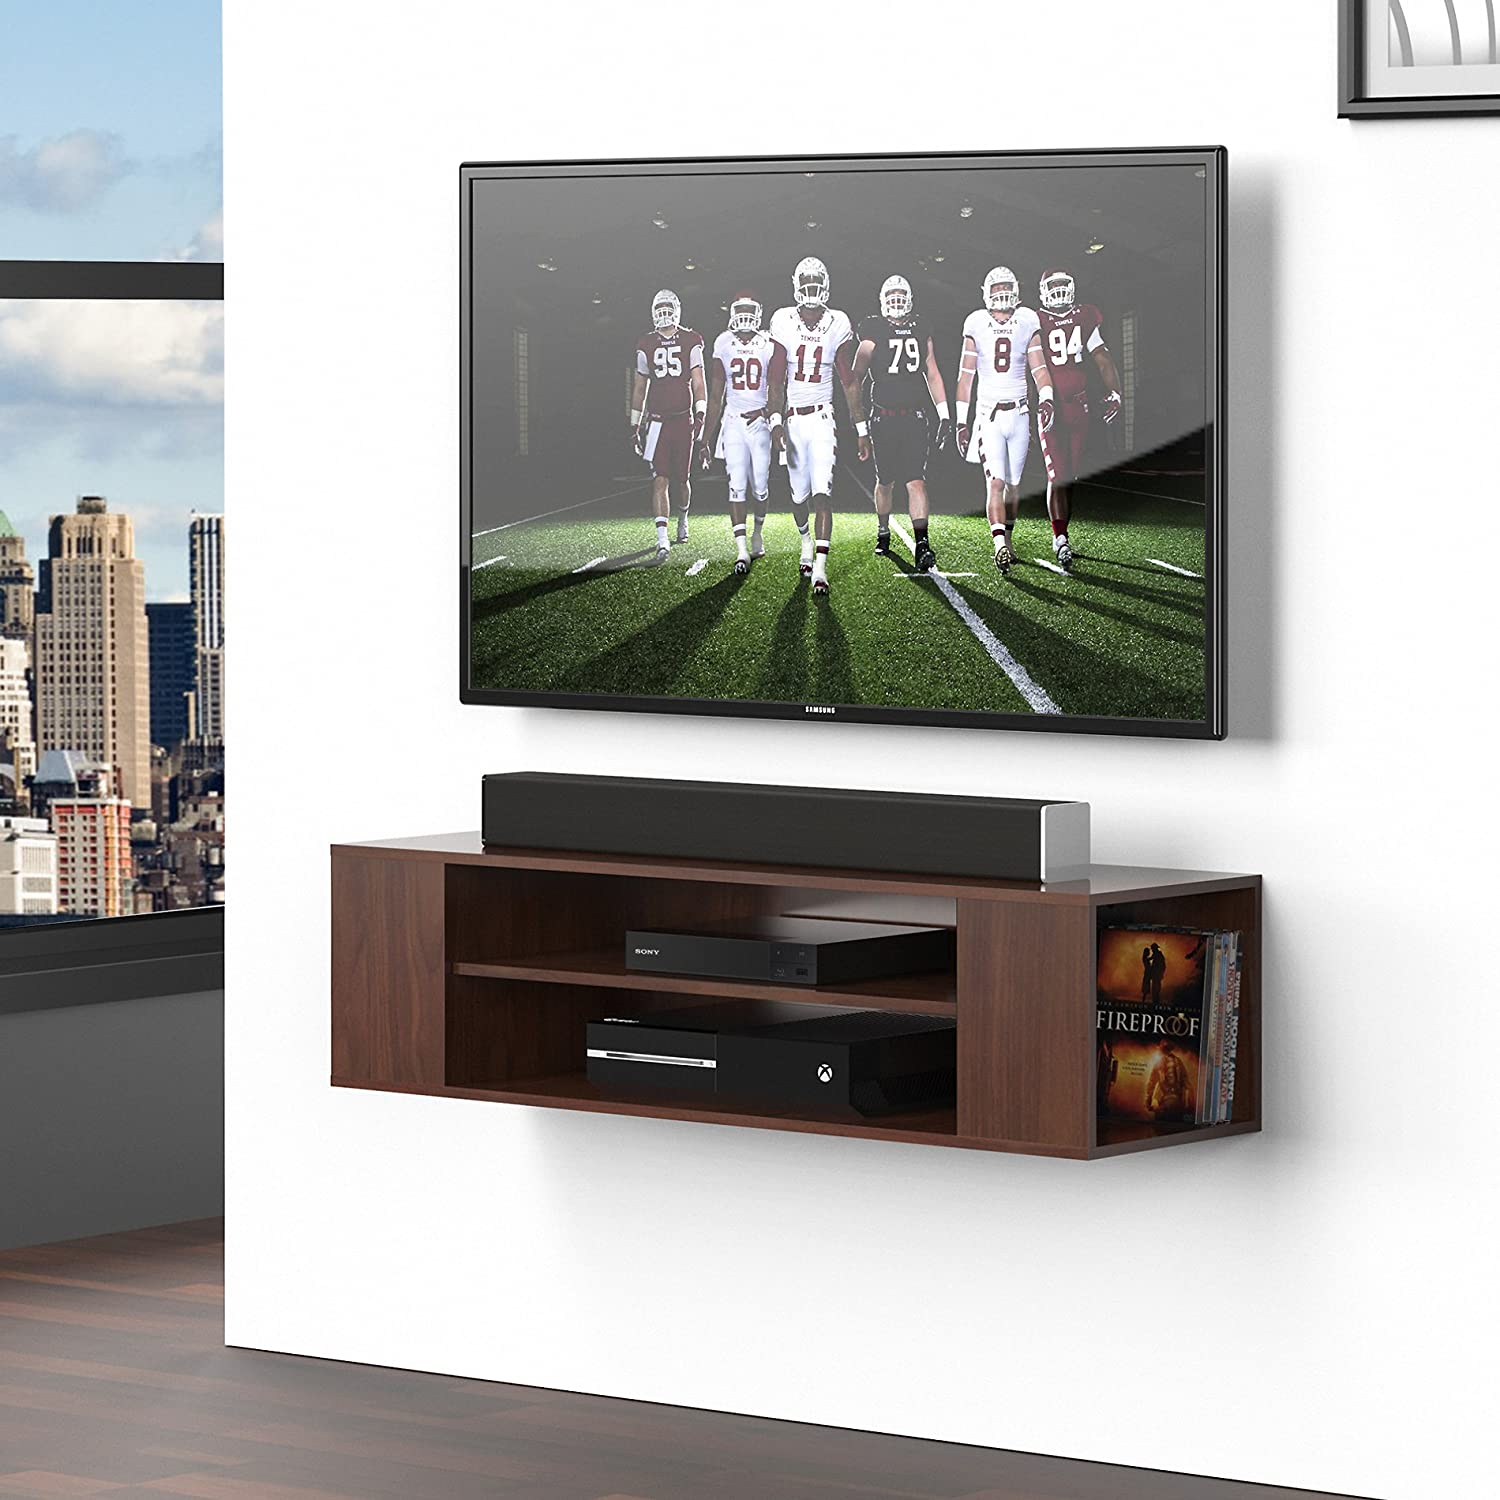 Amazon.com: Fitueyes DS210001WB-G Wall Mounted Media Console Shelf ...